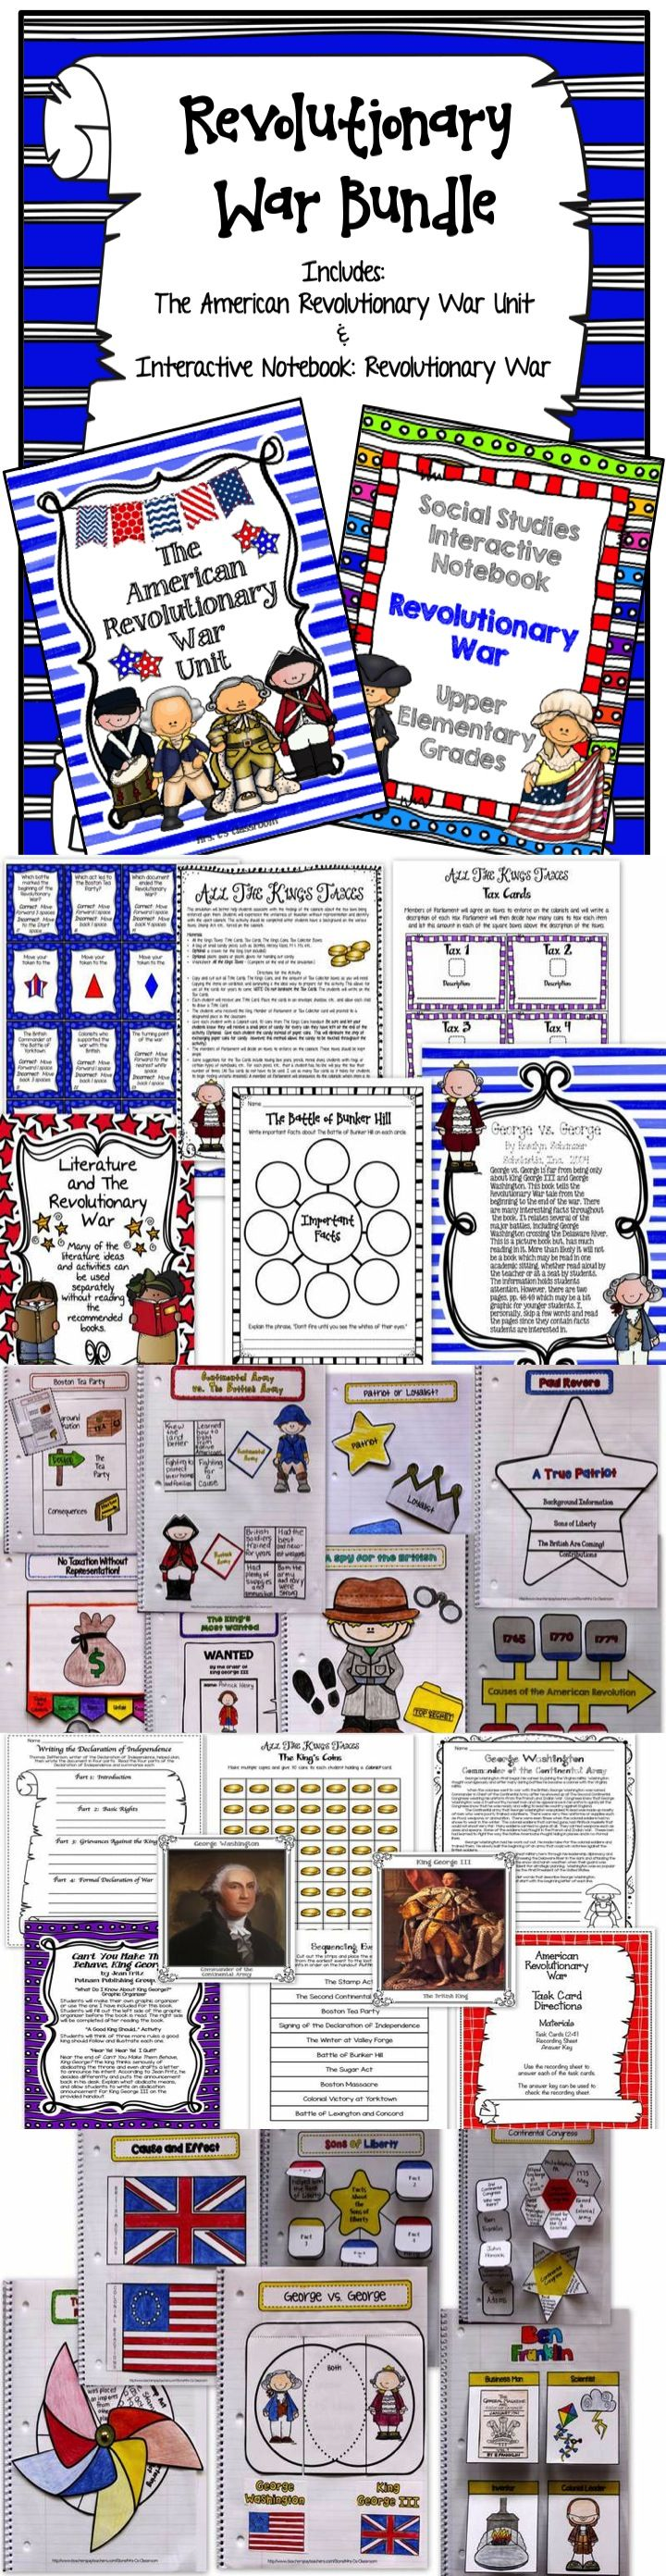 This large American Revolutionary War BUNDLE includes my American Revolutionary War UNIT  and INTERACTIVE NOTEBOOK.  The unit includes handouts, worksheets, activities, vocabulary cards, reference pages, coloring pages, assessment, images of the revolution, and much more! The INTERACTIVE NOTEBOOK  has templates that compliment the unit. Using both the unit and the interactive notebook pages allows your students to have the complete experience of learning about this period of history!